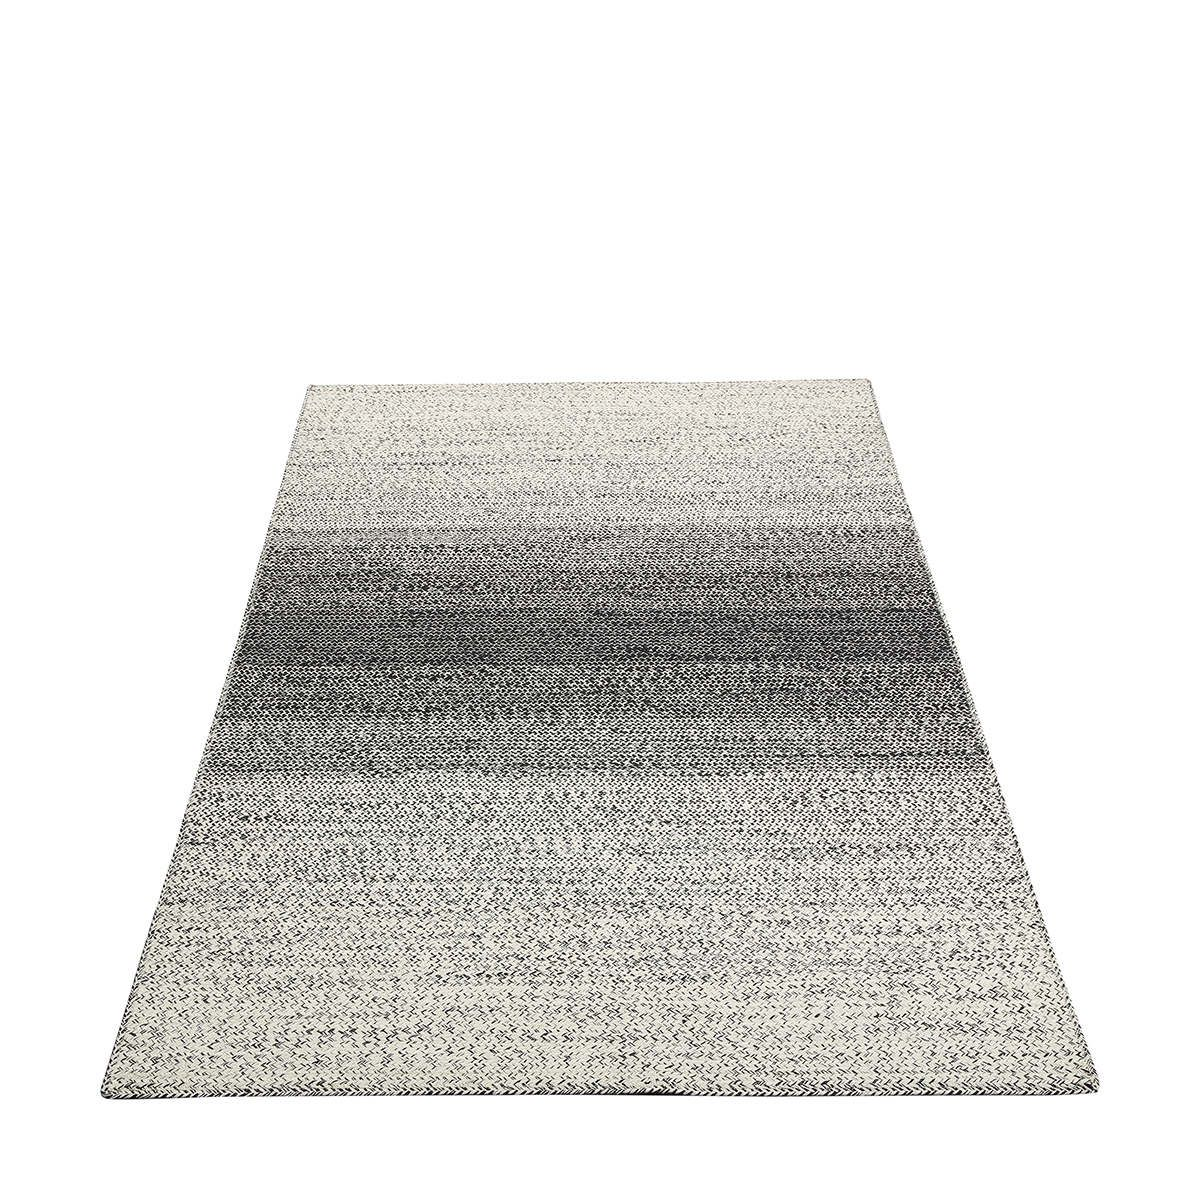 Ombre Rug Large Kmart Outdoor Furniture Cushions Large Rugs